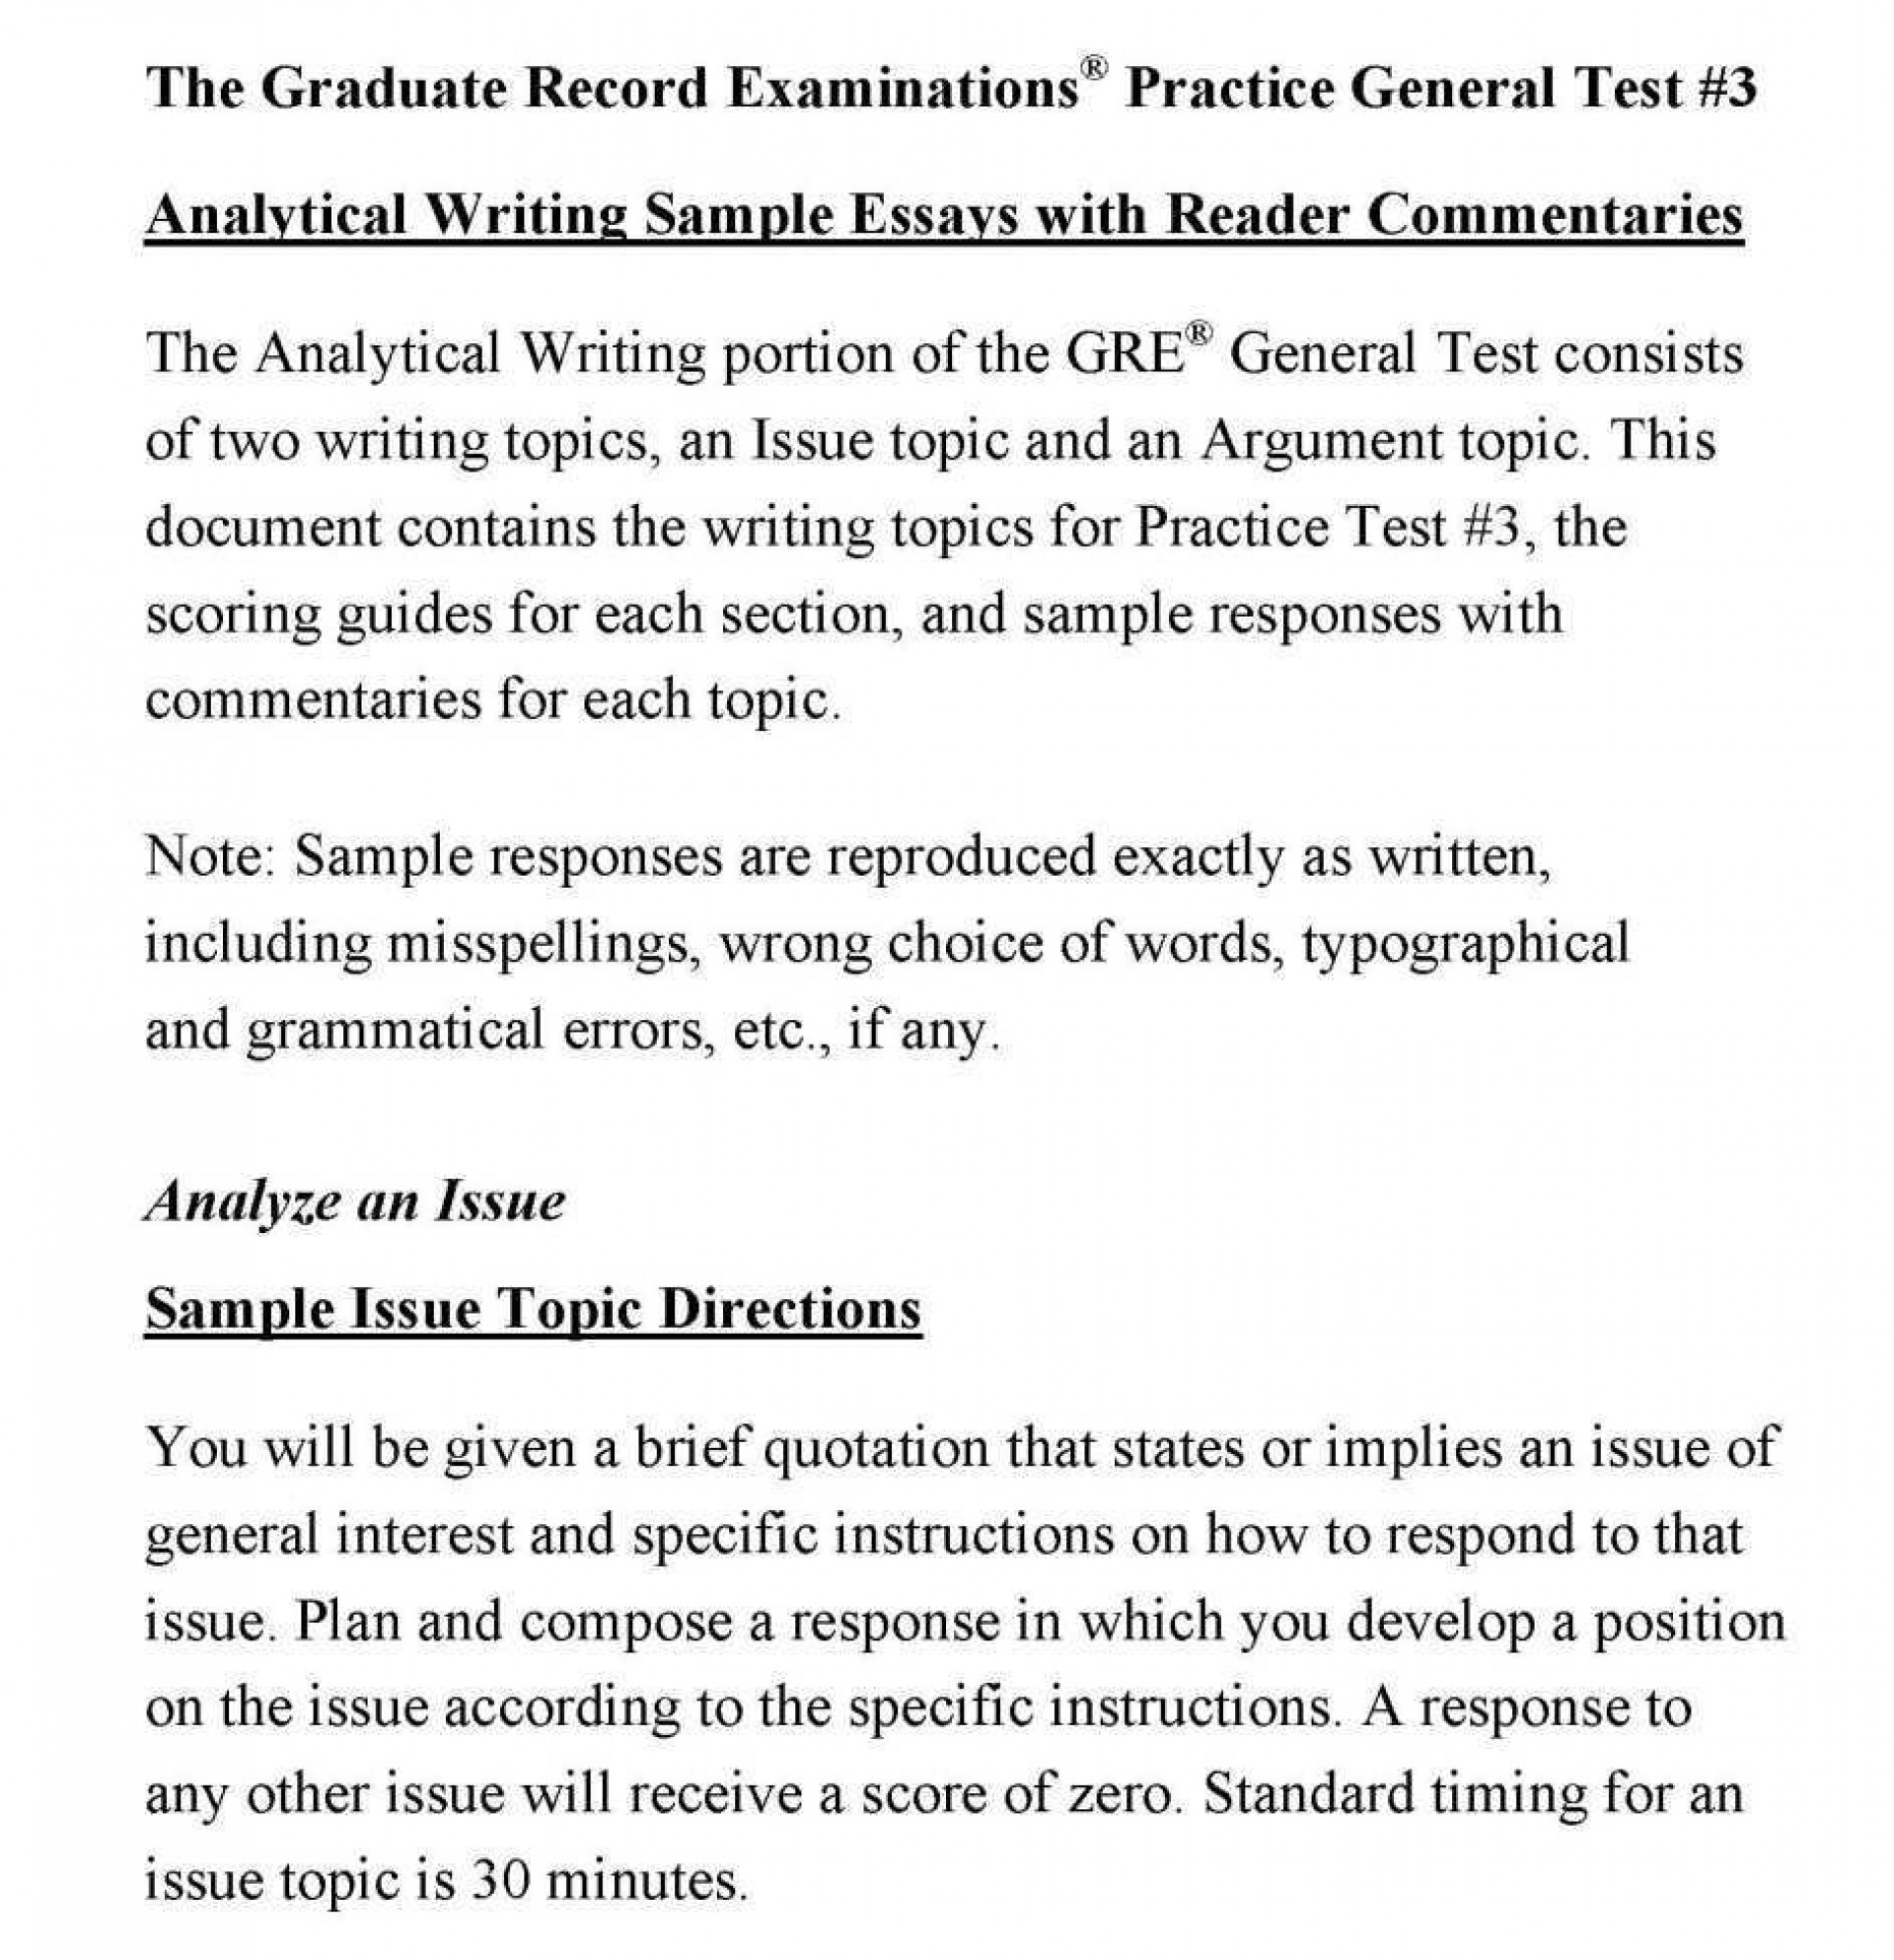 008 Gre Essay Topics Analytical Writing Samples Rare Argument Answers Magoosh Pool 1920